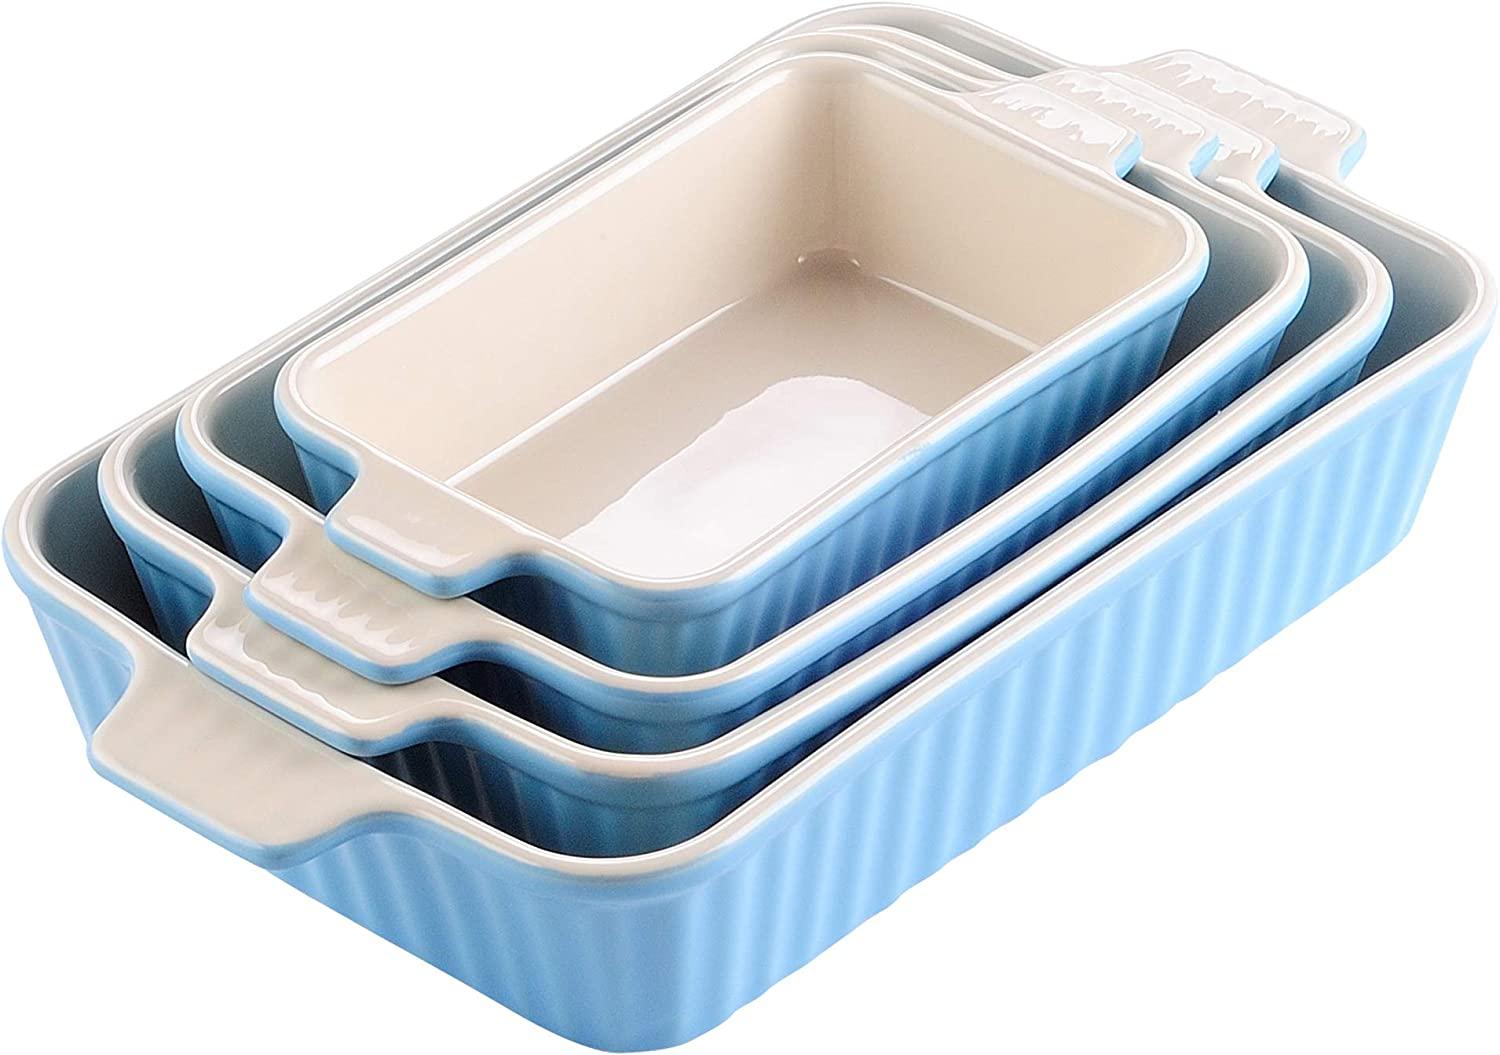 Malacasa Series Bake Rectangular Baking Dish Set Of 4 9 11 12 13 3 Oven To Table Baking Dish With Ceramic Handles Ideal For Lasagne Pie Casserole Tapas Blue Amazon Co Uk Kitchen Home